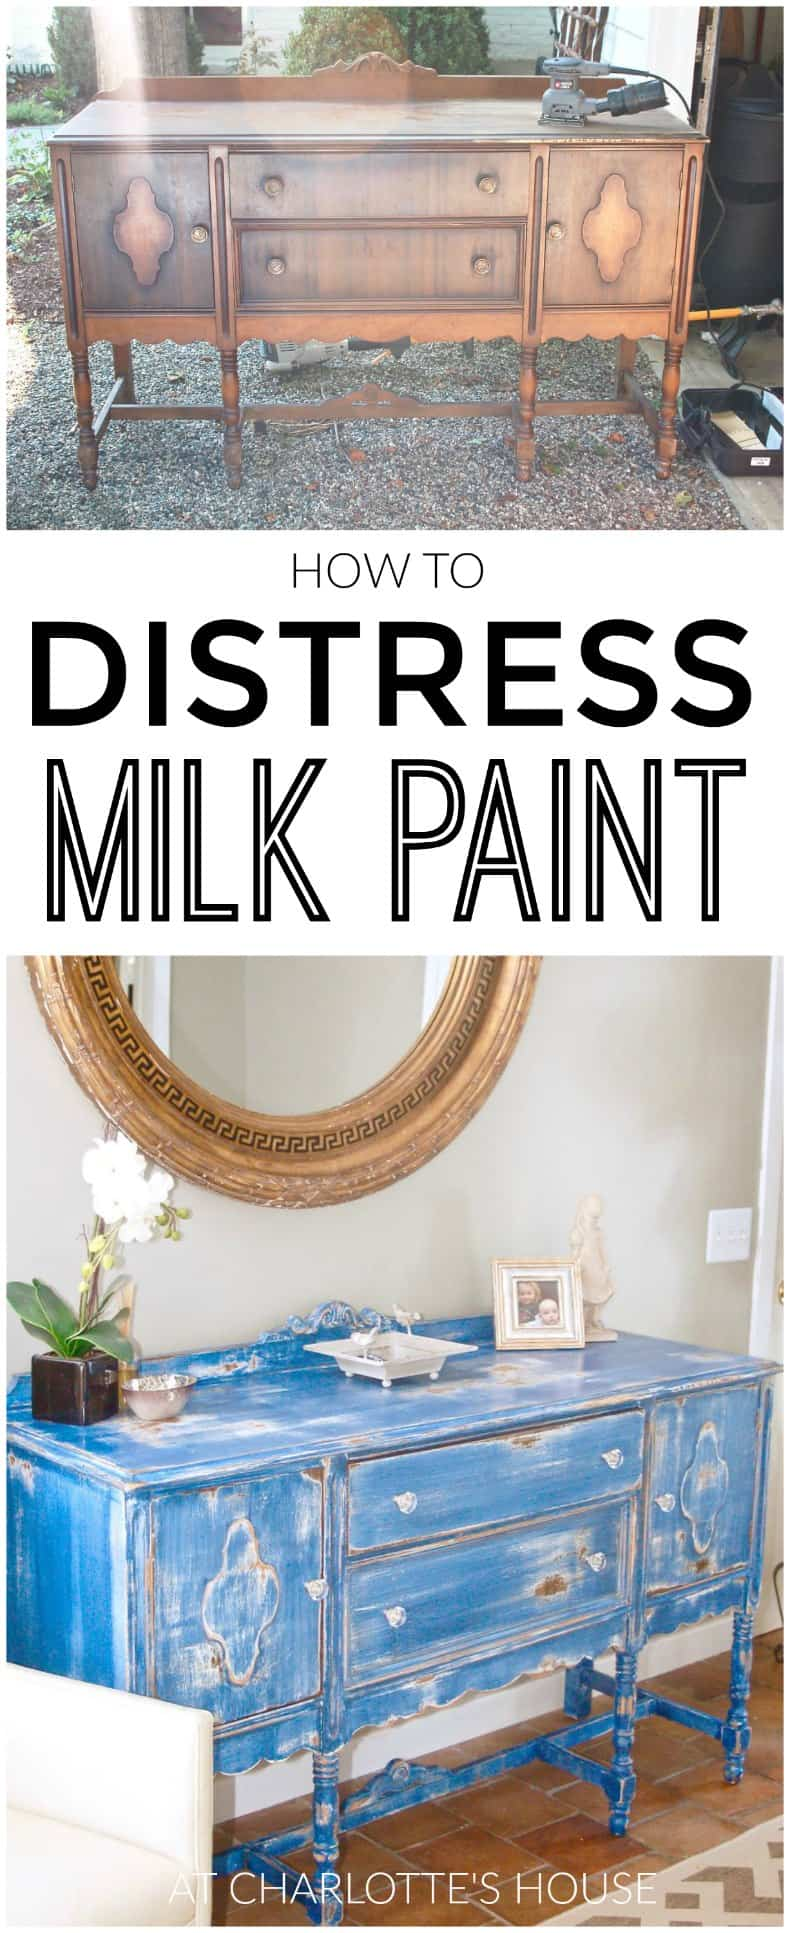 how to use milkpaint to distress an old thrifted sideboard.